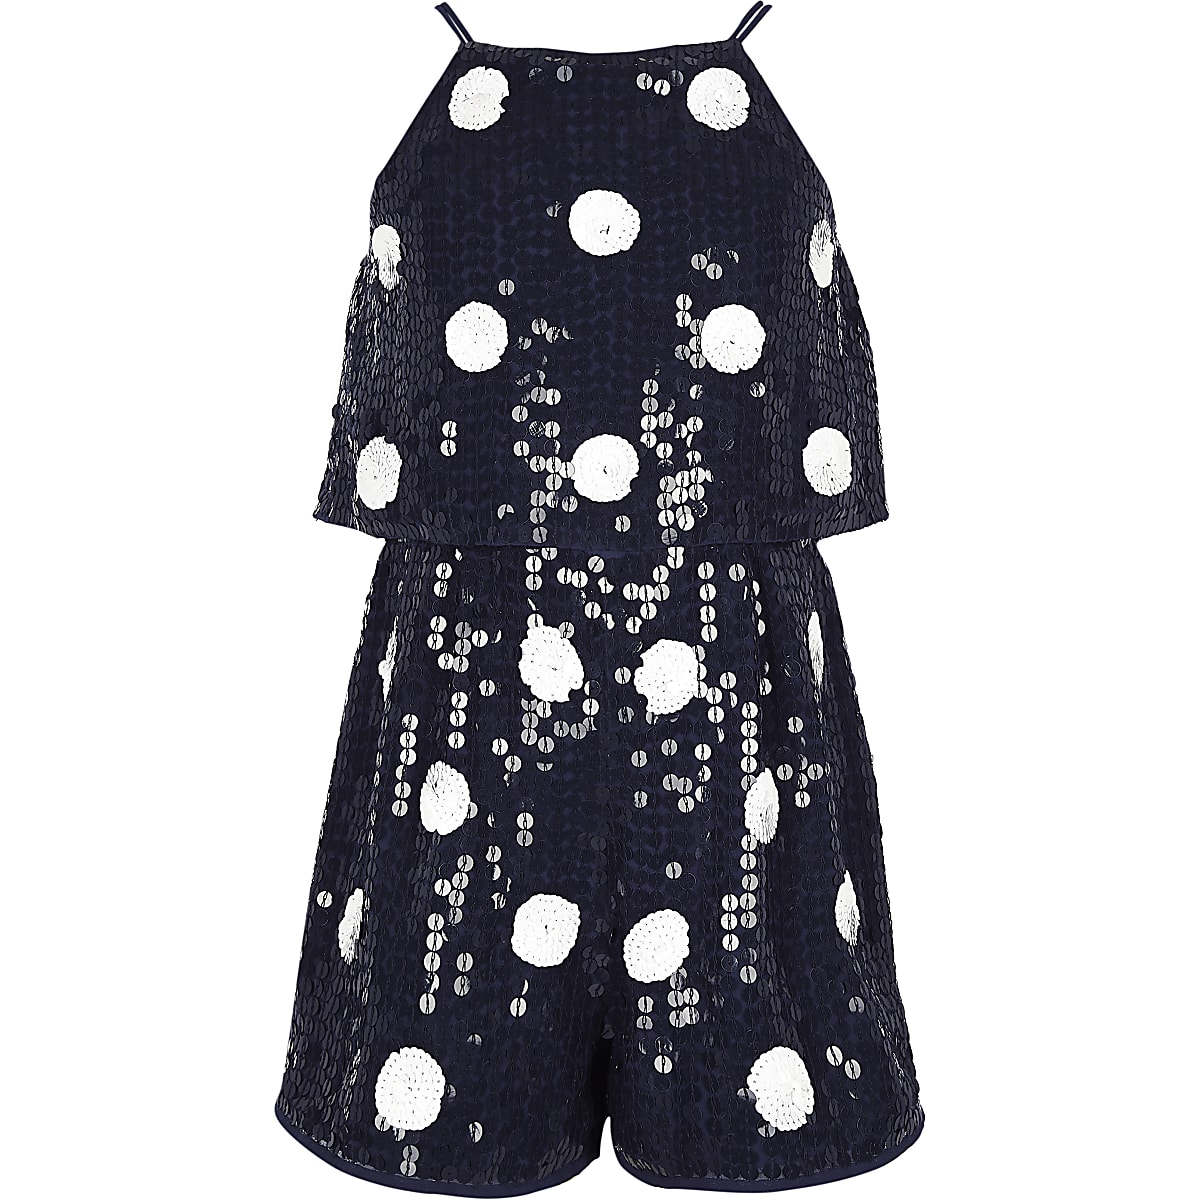 cdd8a2063a Girls navy polka dot sequin playsuit - Playsuits - Playsuits   Jumpsuits -  girls